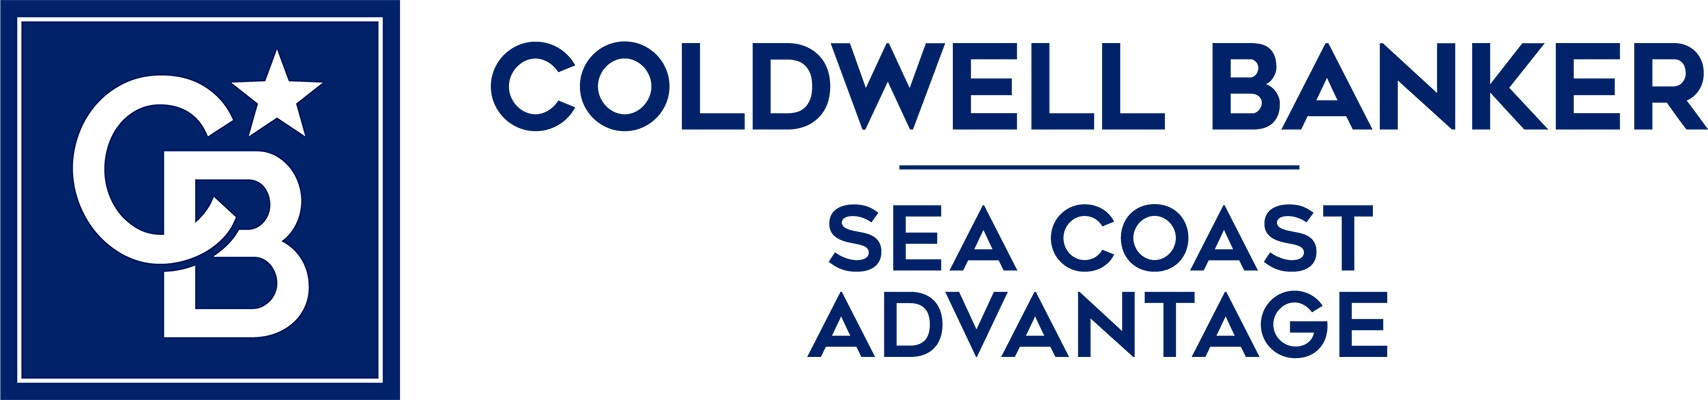 Susan Donner - Coldwell Banker Sea Coast Advantage Realty